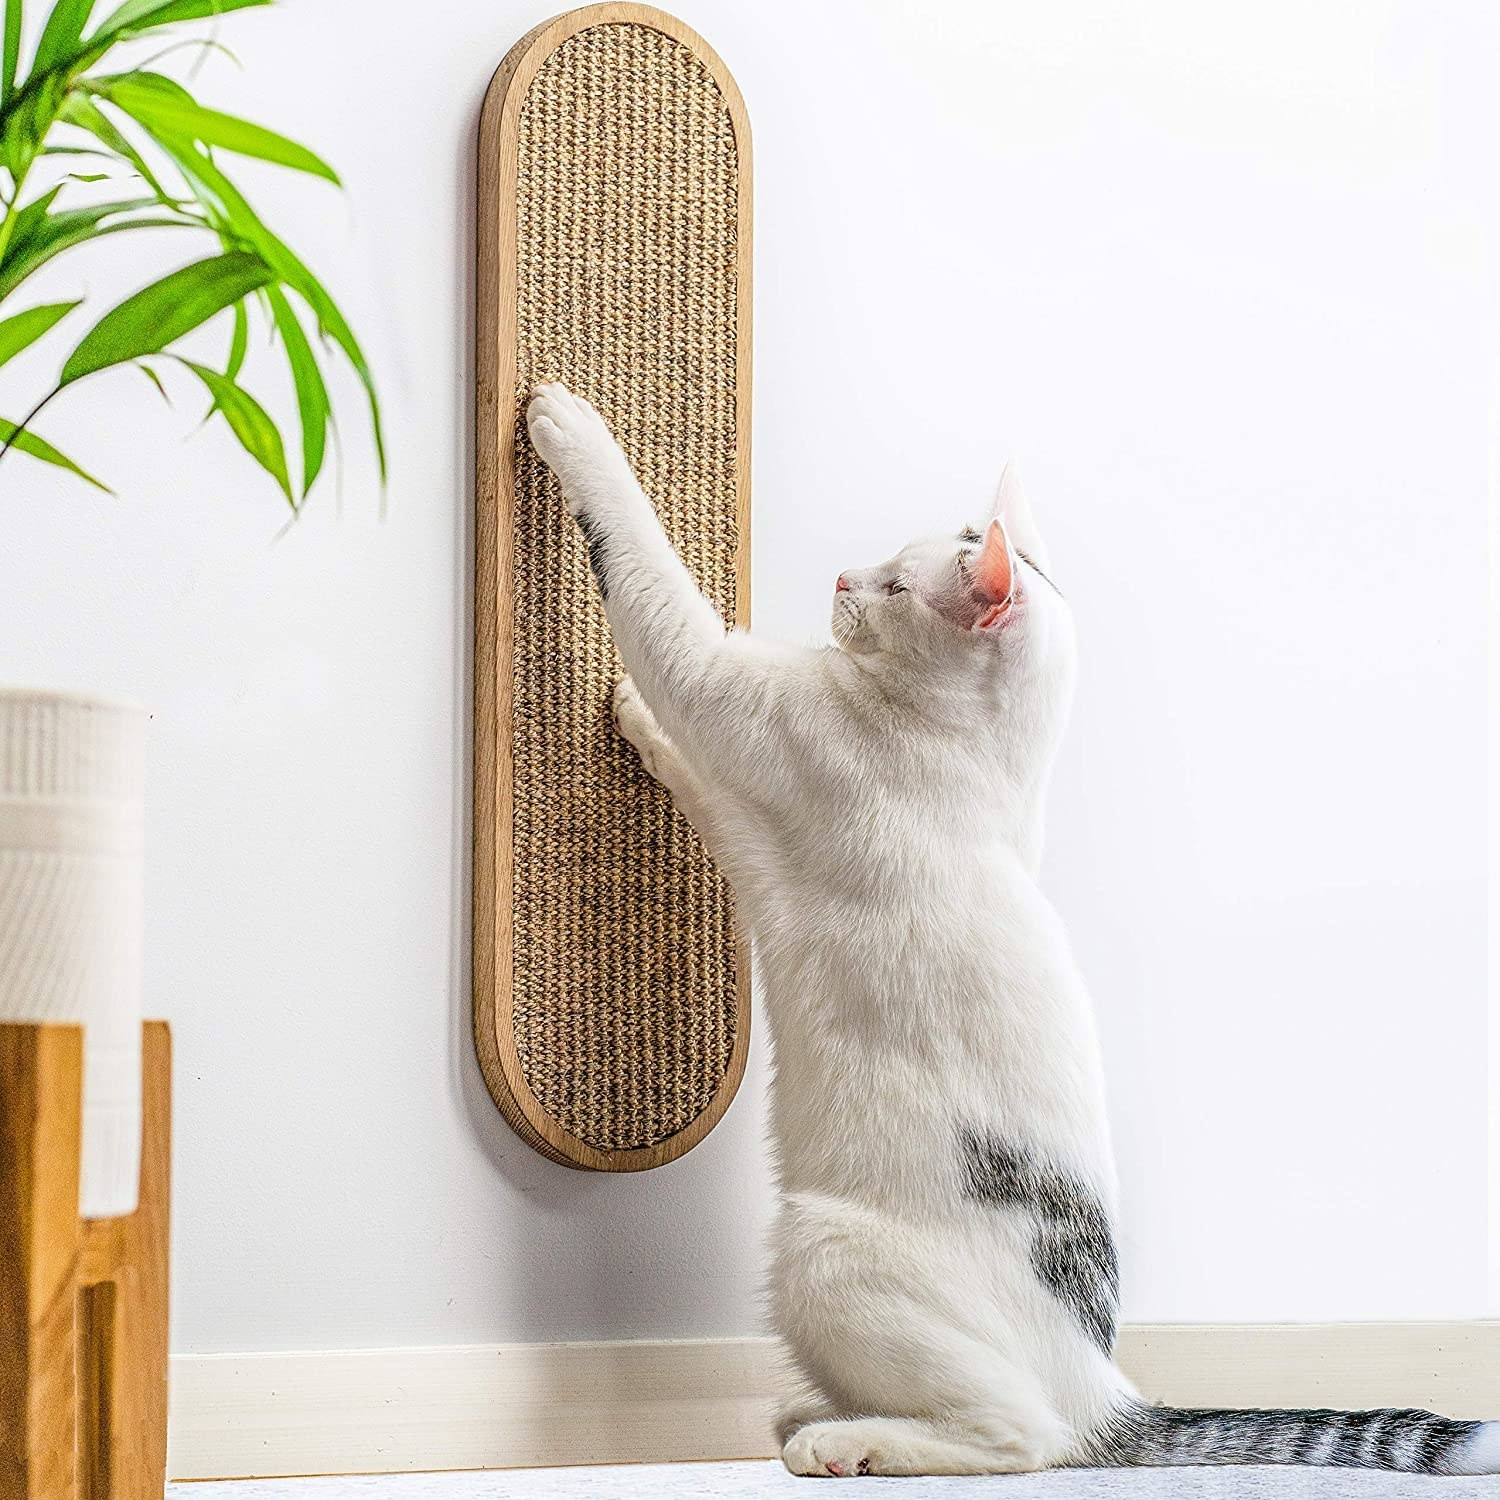 a white and grey cat scratching at an oval-shaped cat scratching pad